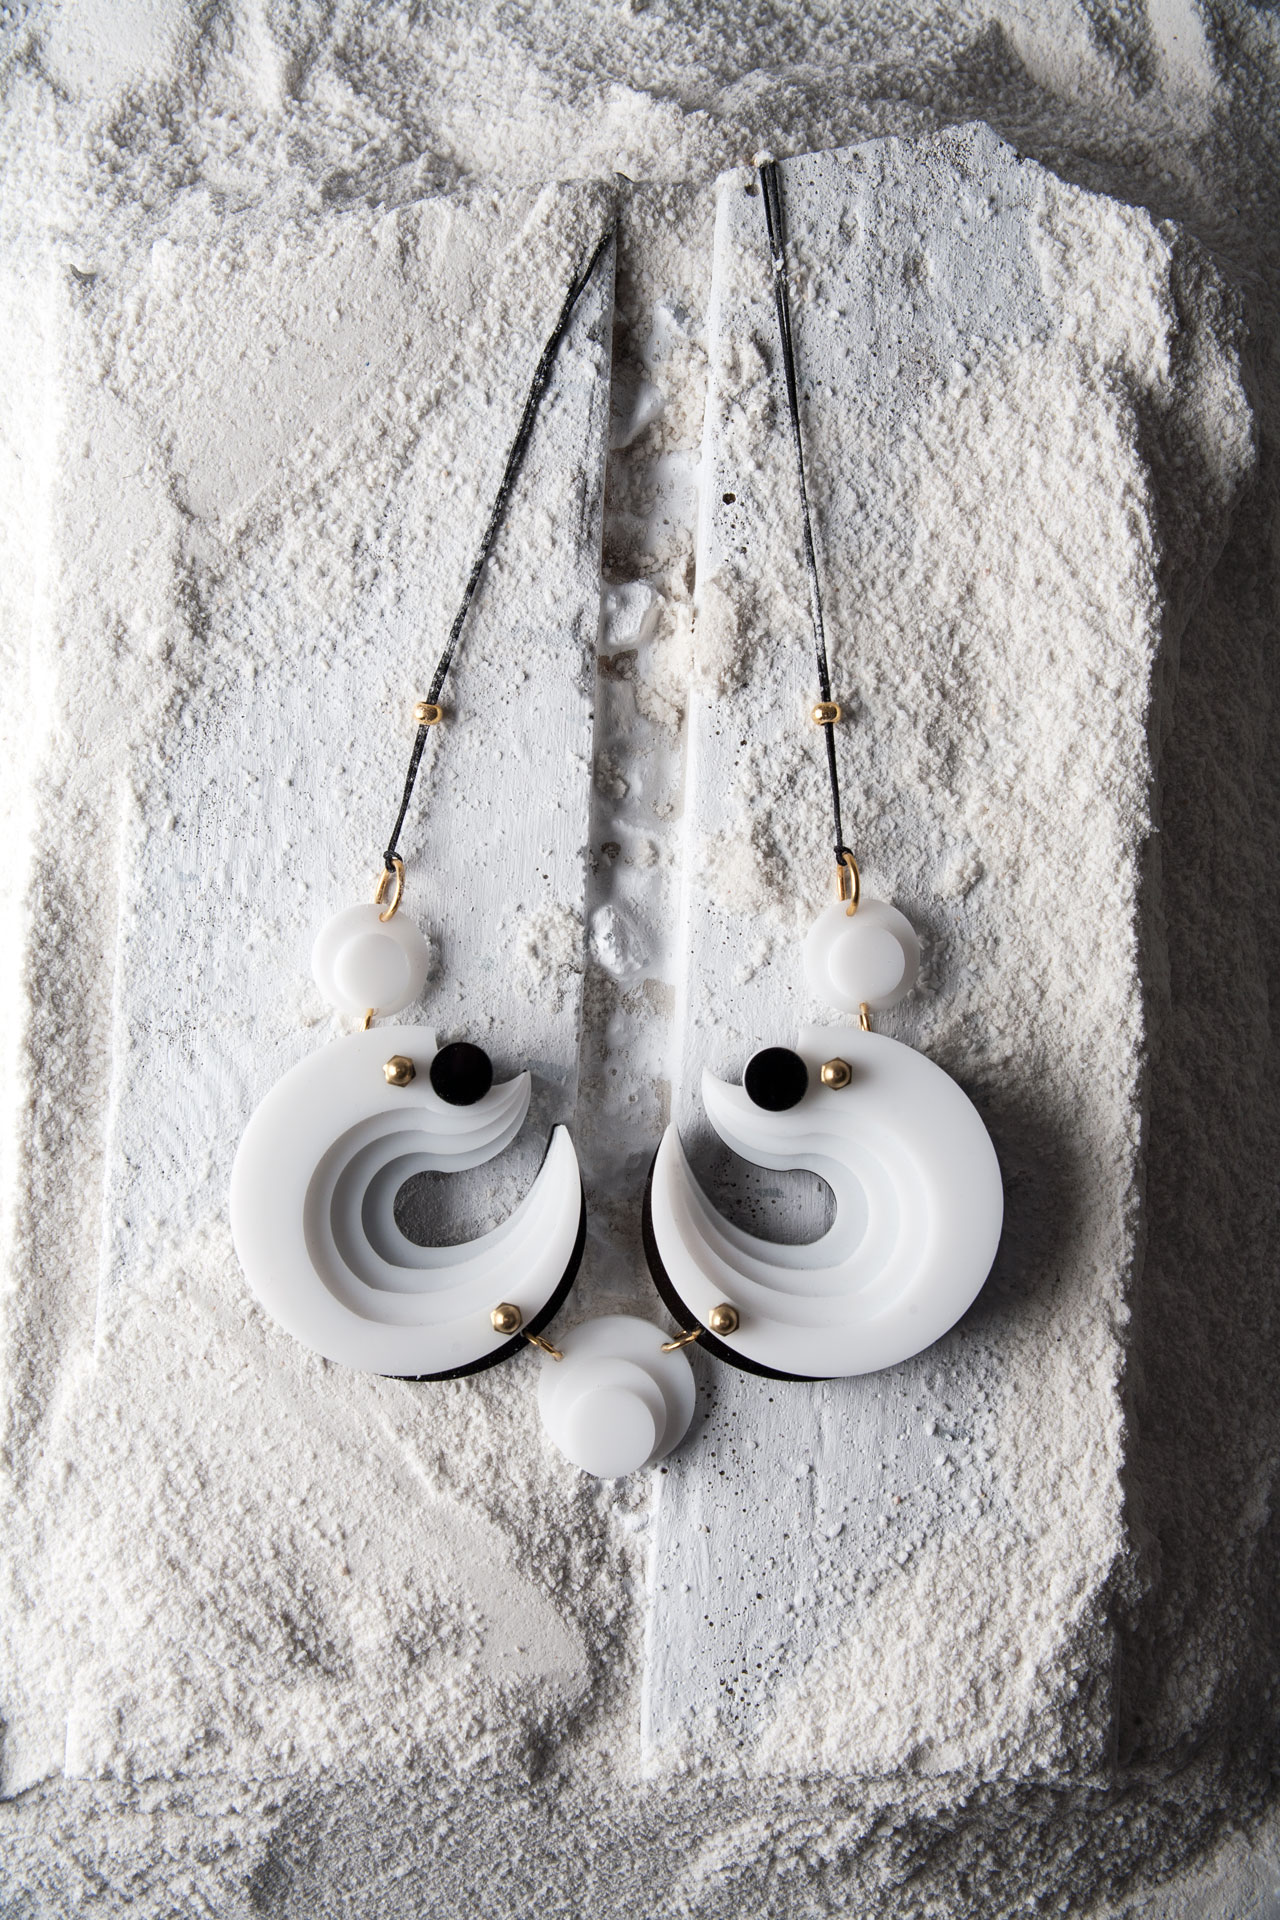 Topos Necklace by Nefelia.